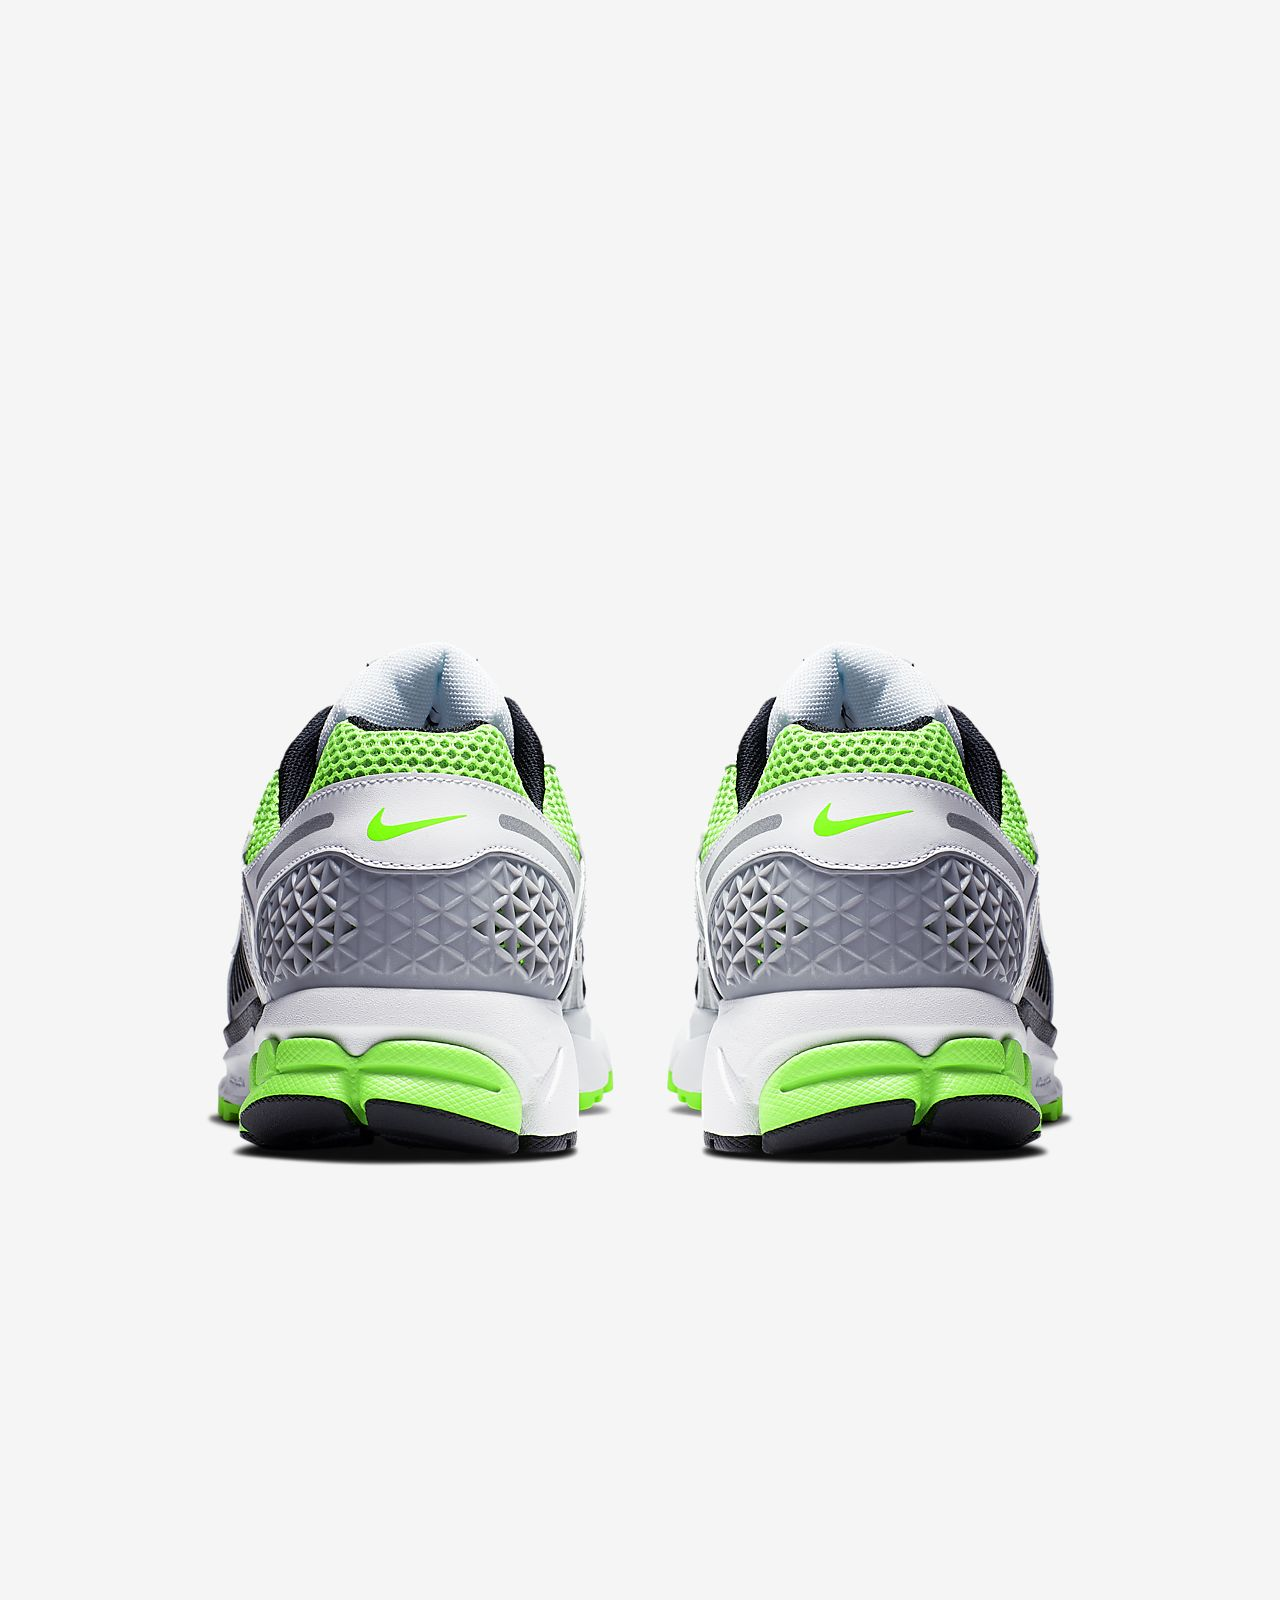 Nike Zoom Vomero 5 SE SP (Grey White)